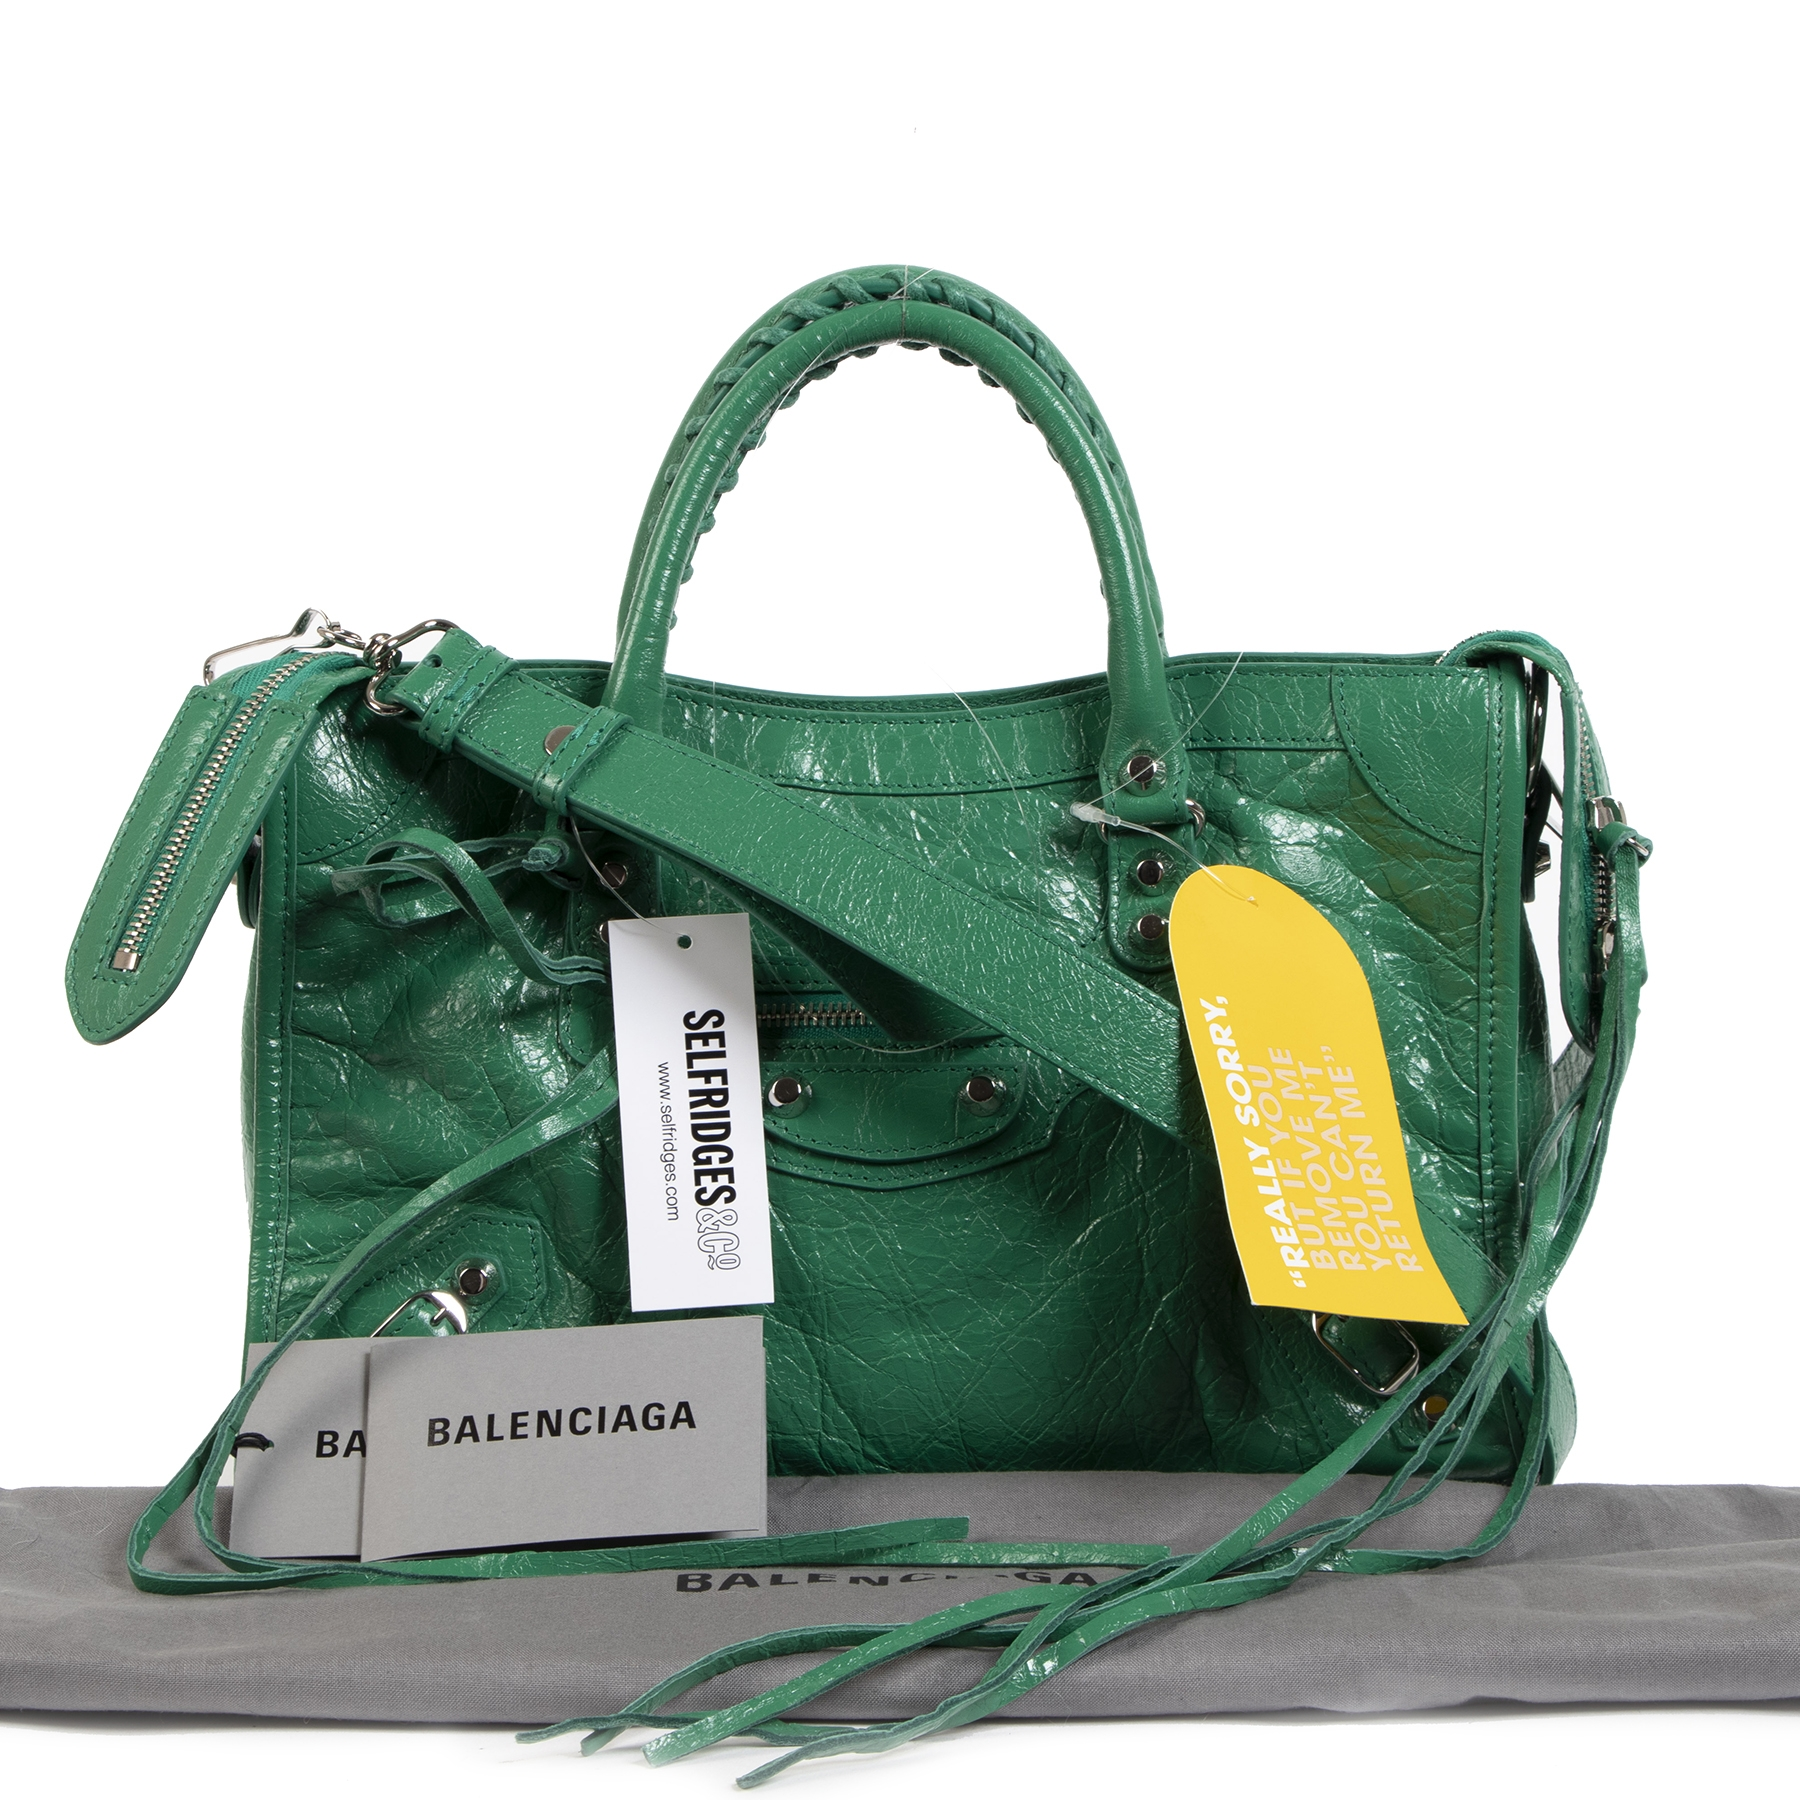 Authentique seconde-main vintage Balenciaga Green Classic City S Bag achète en ligne webshop LabelLOV